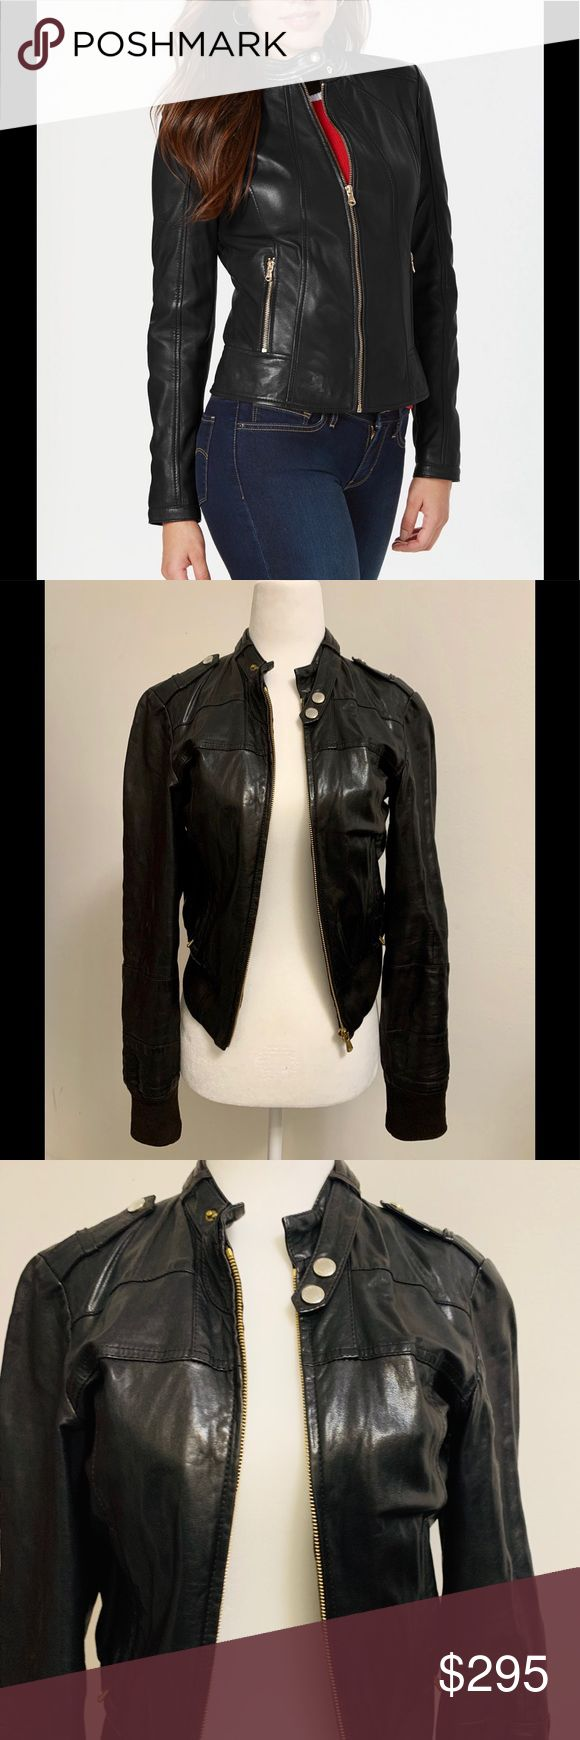 Vintage Hugo Boss Women's Moto Leather Jacket Leather